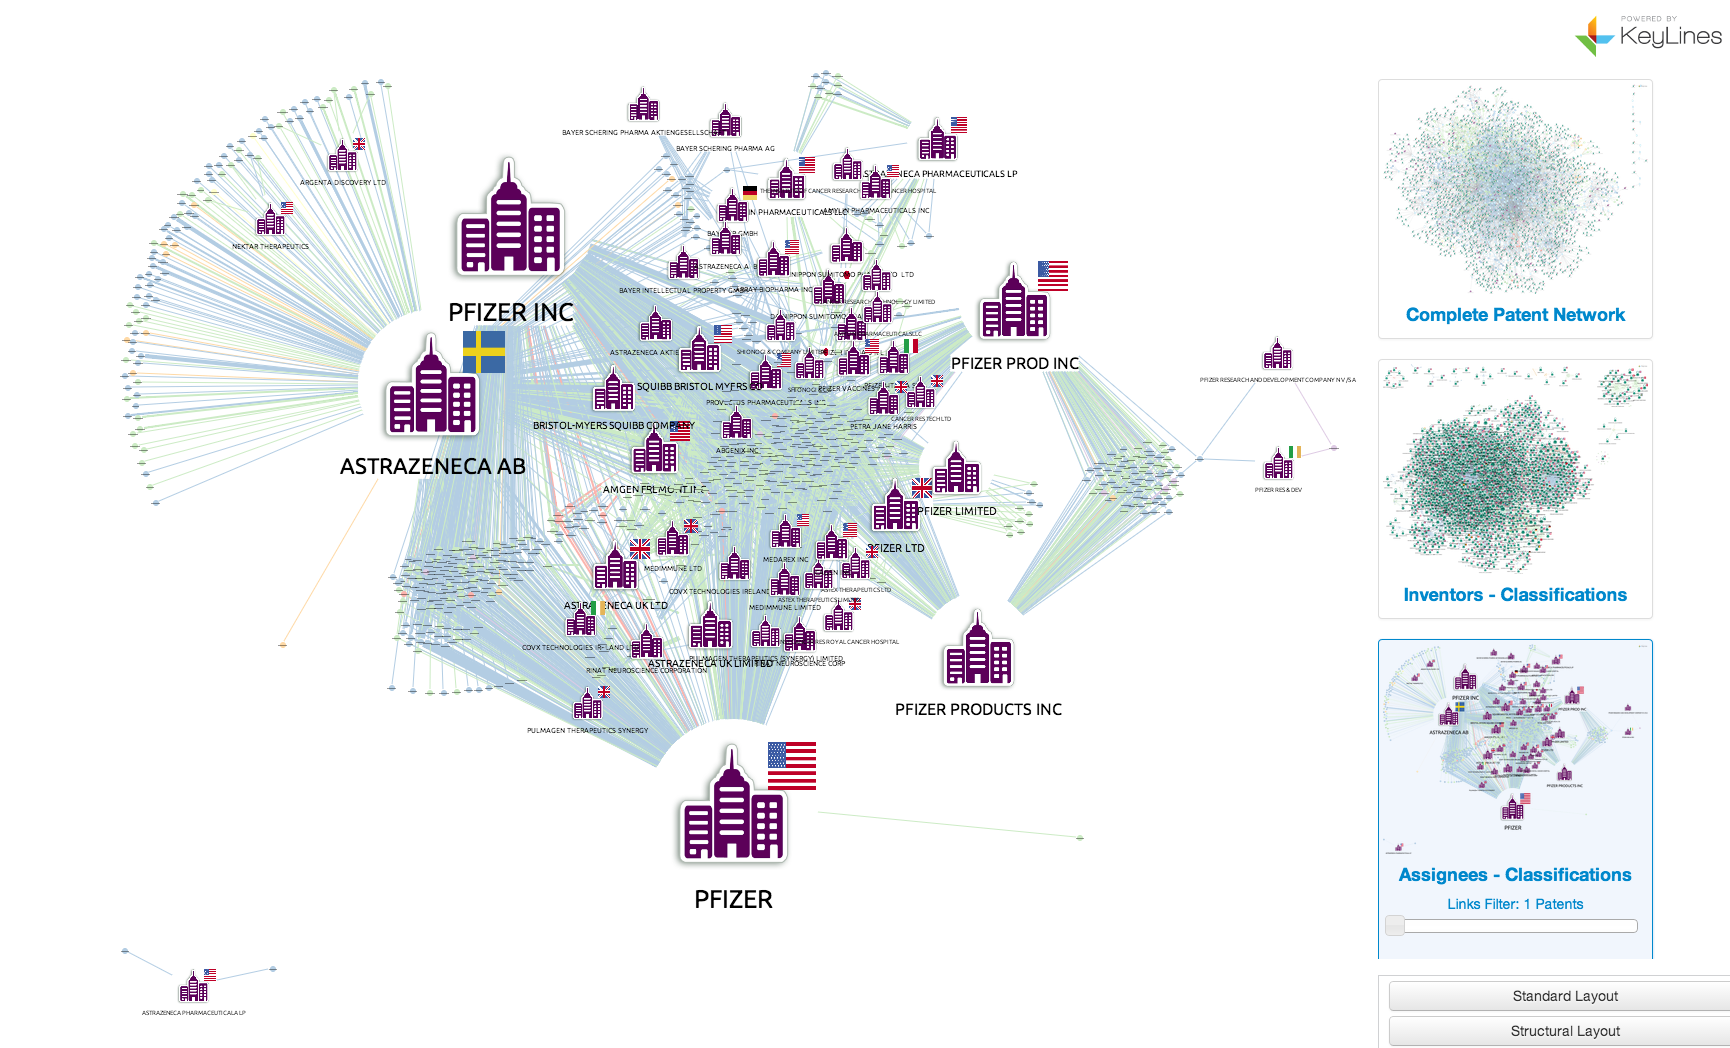 Visualizing a network of patents - connected by assignees and classifications